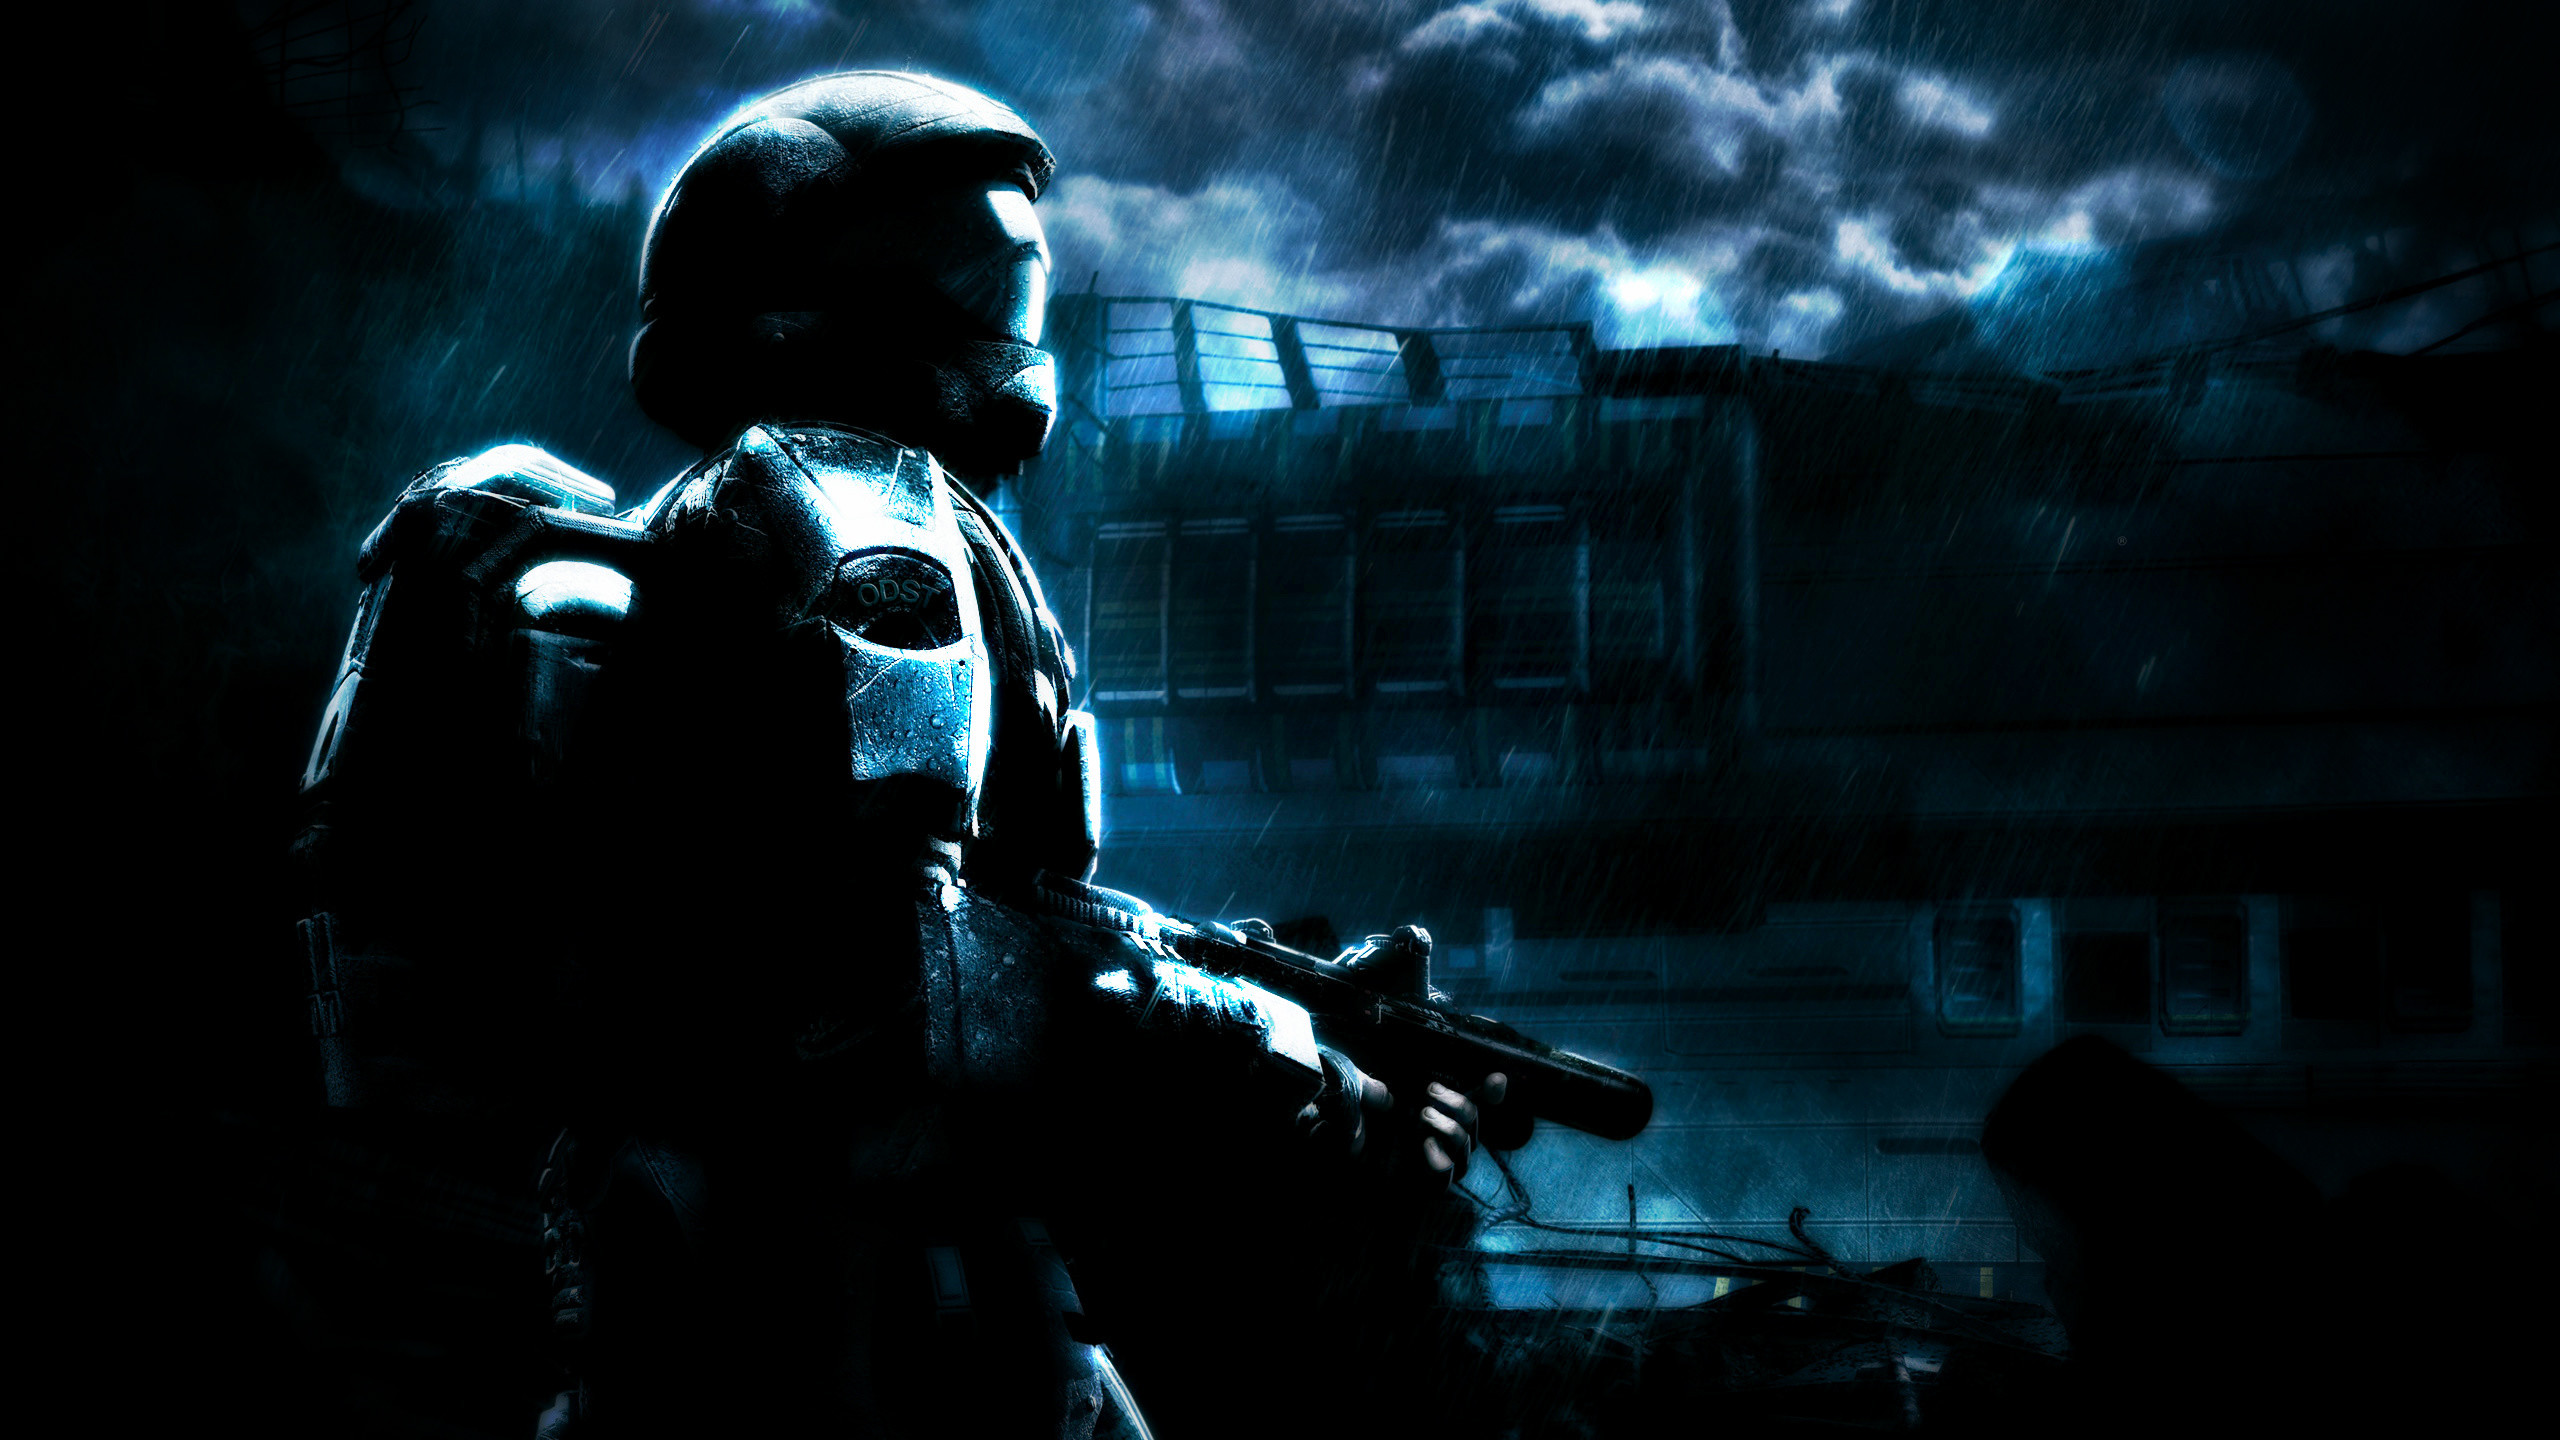 Halo 3 Iphone Wallpaper 71 Images